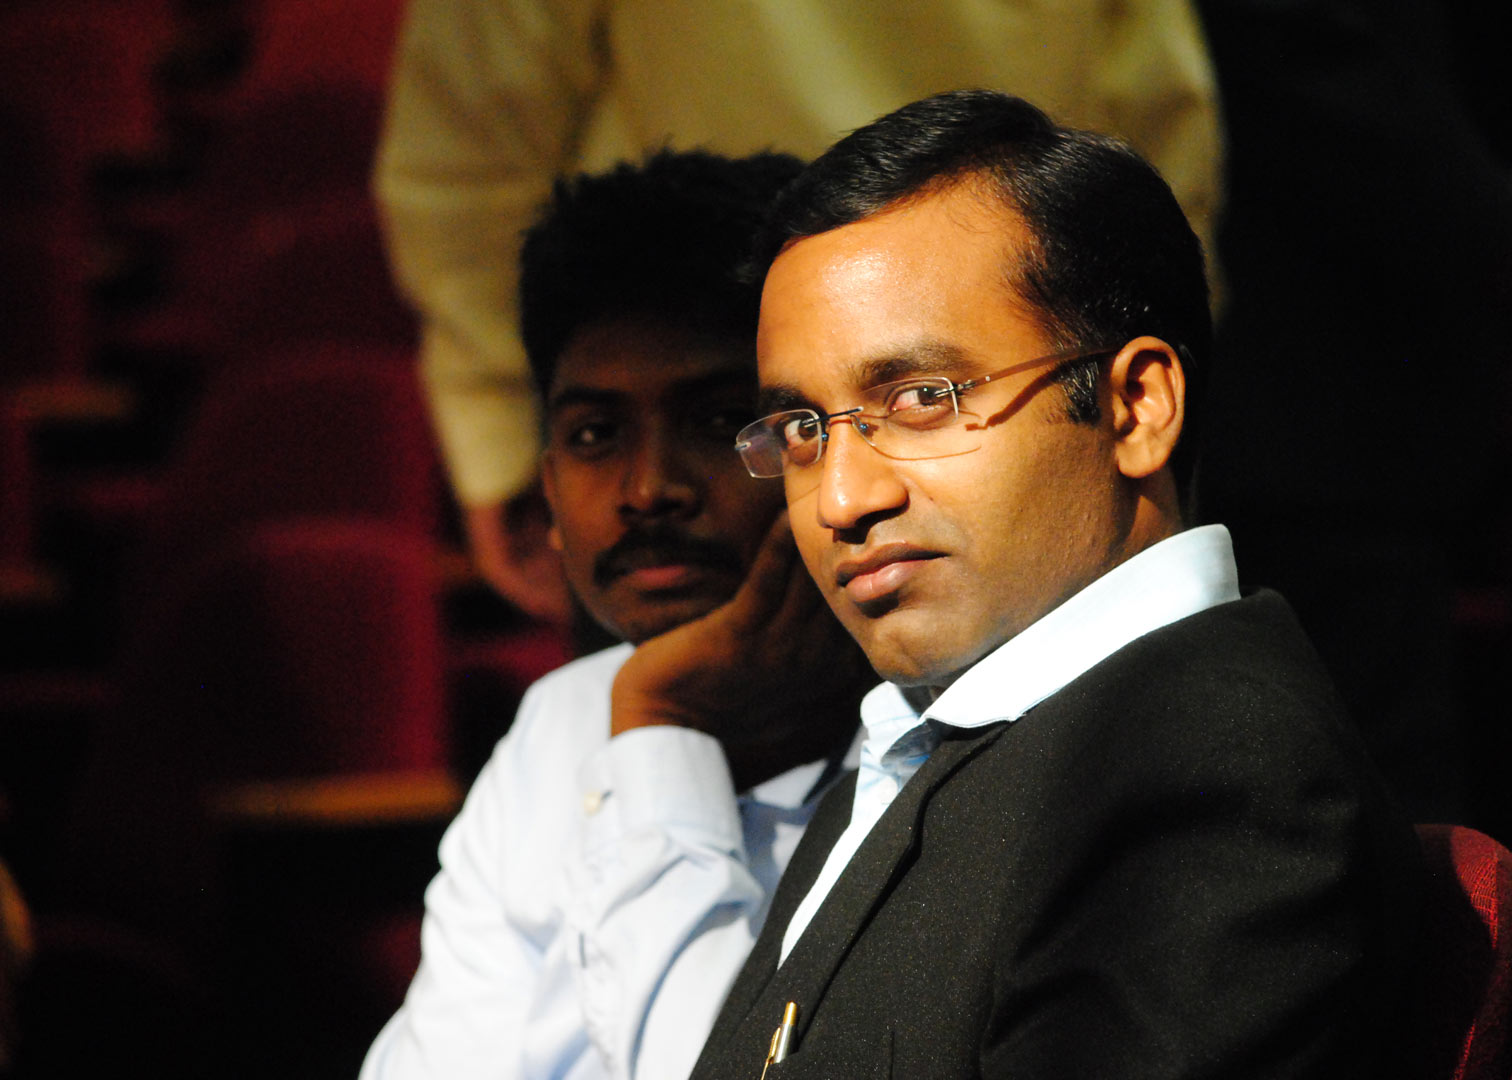 Dr. Deepak Rangaswamy seated